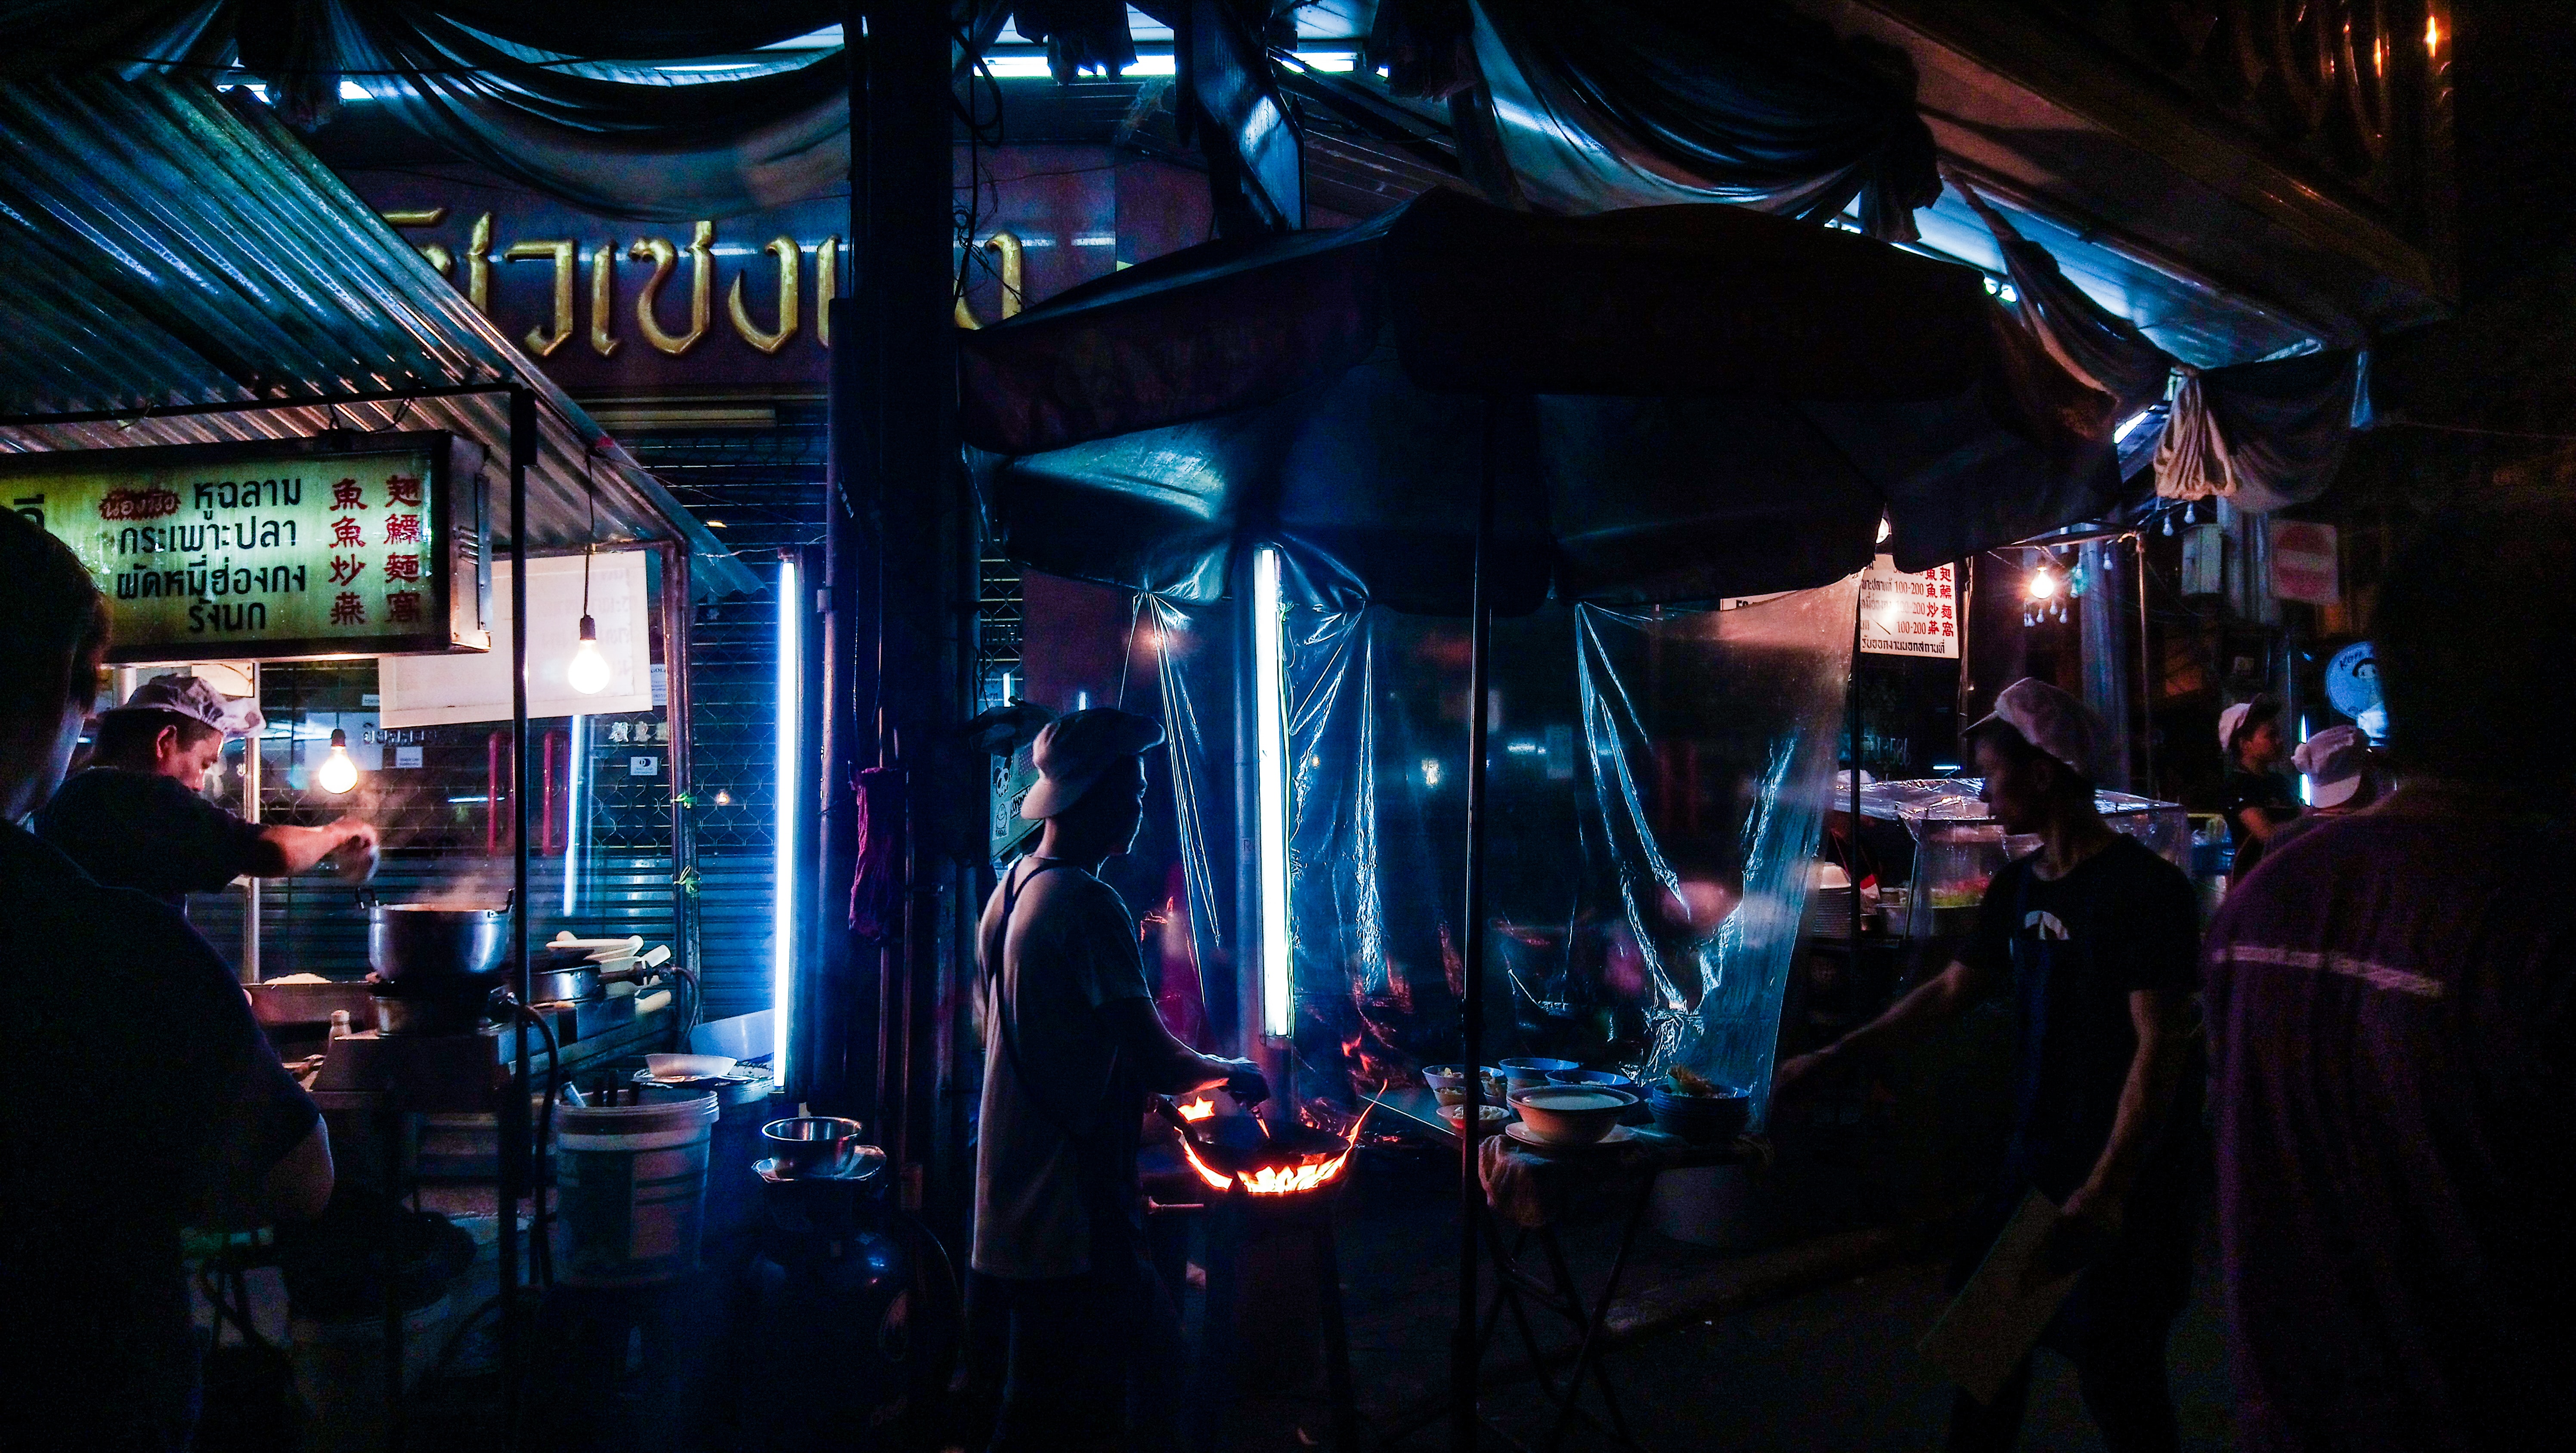 man grilling meat while man in black shirt standing in front of food stall